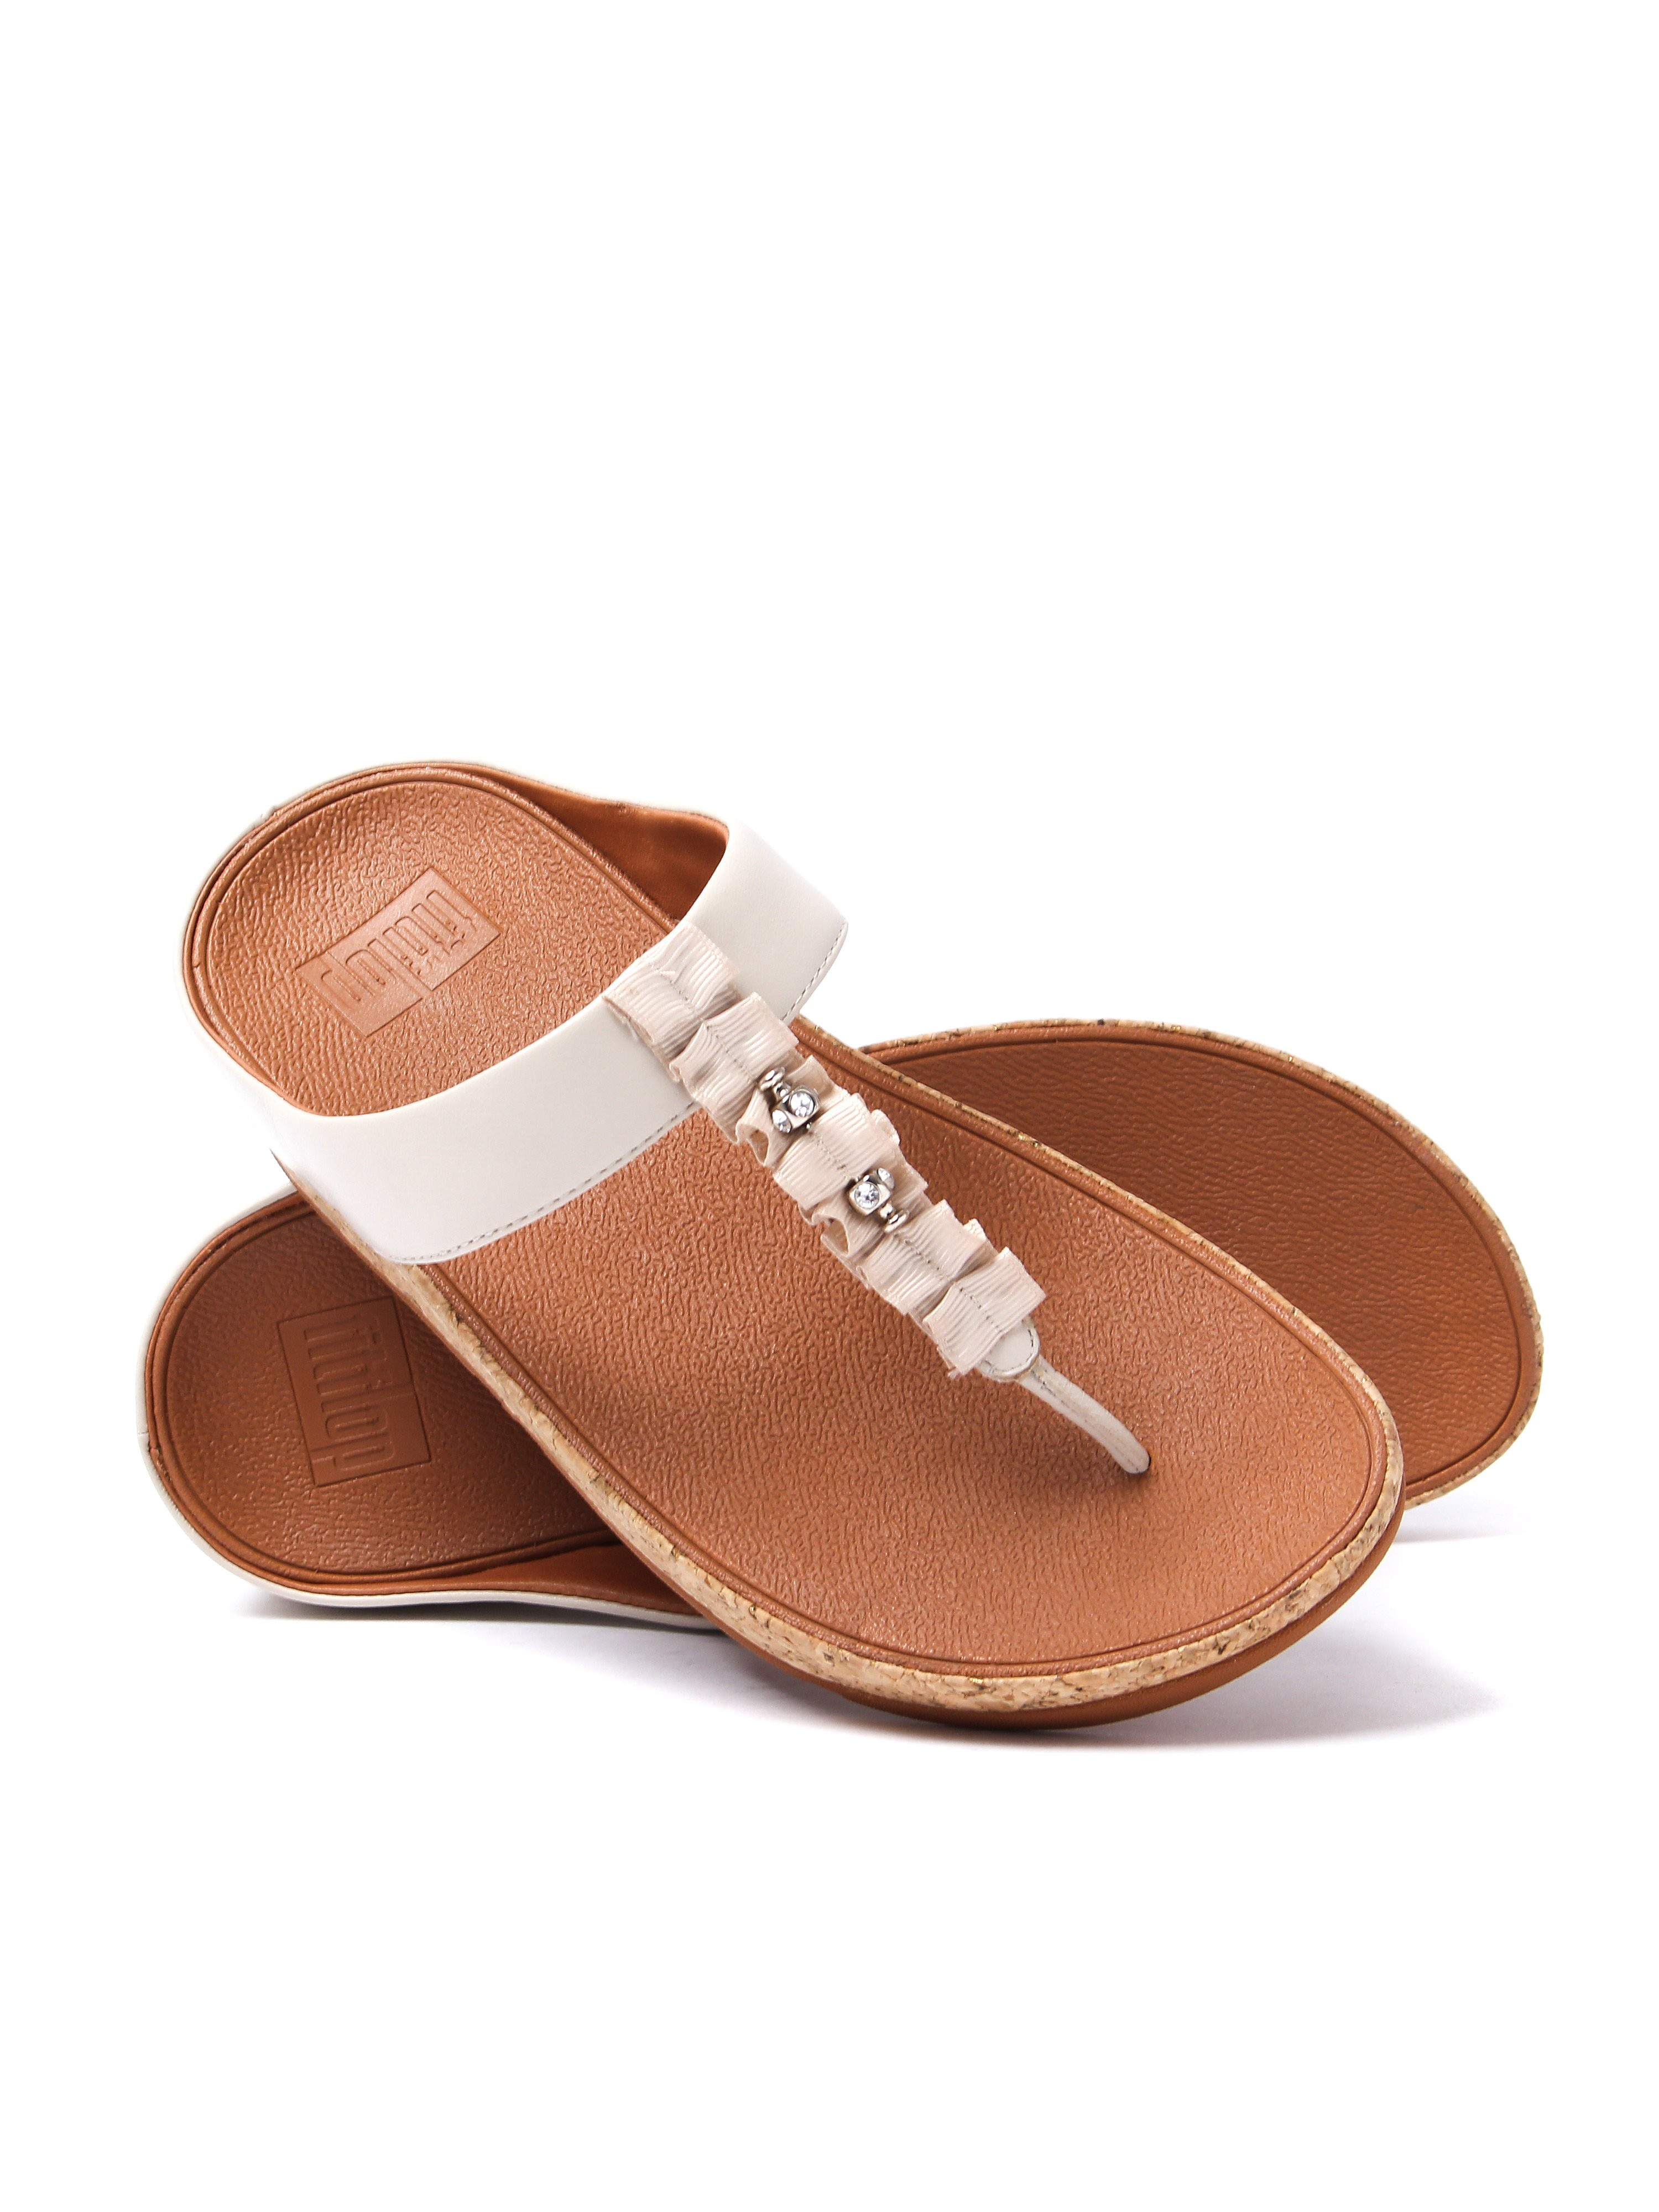 FitFlop Women's Ruffle Toe-Thong Sandals - Cream